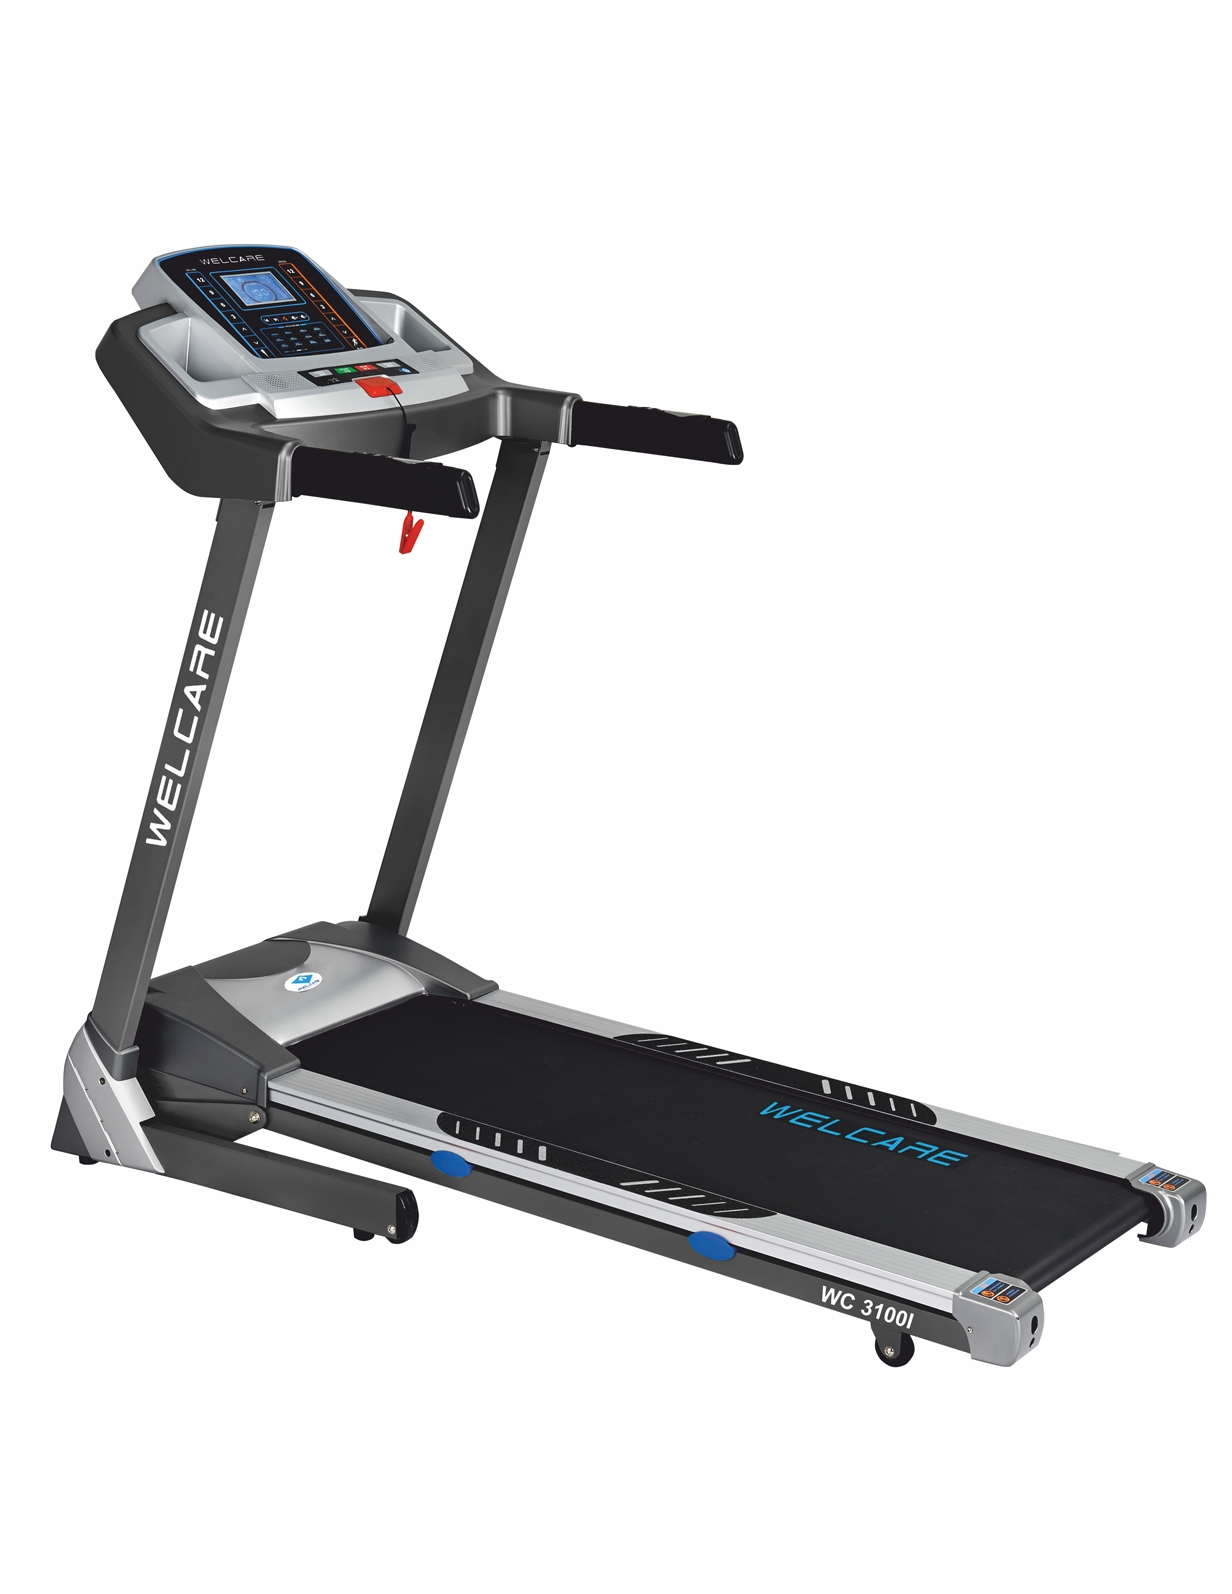 WC 3100I  DC MOTORIZED  TREADMILL